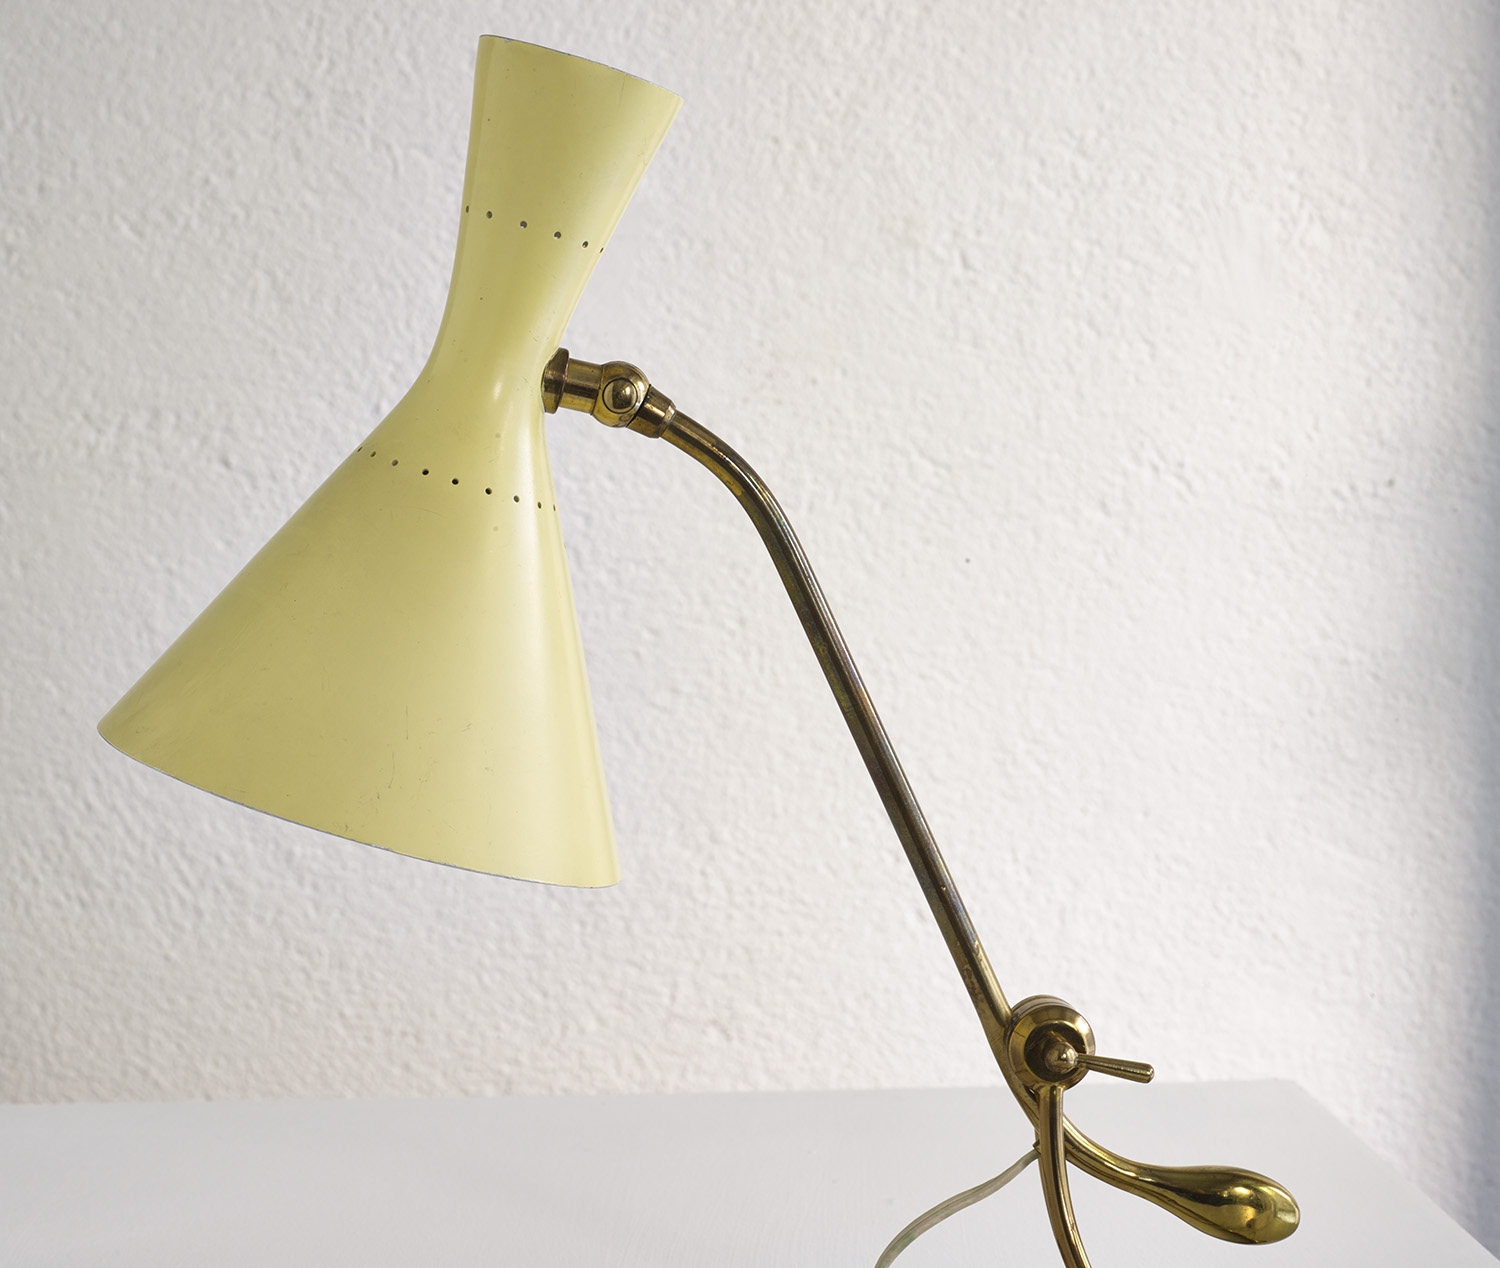 counterweight-table-lamp-by-baumann-kolliker-image-05